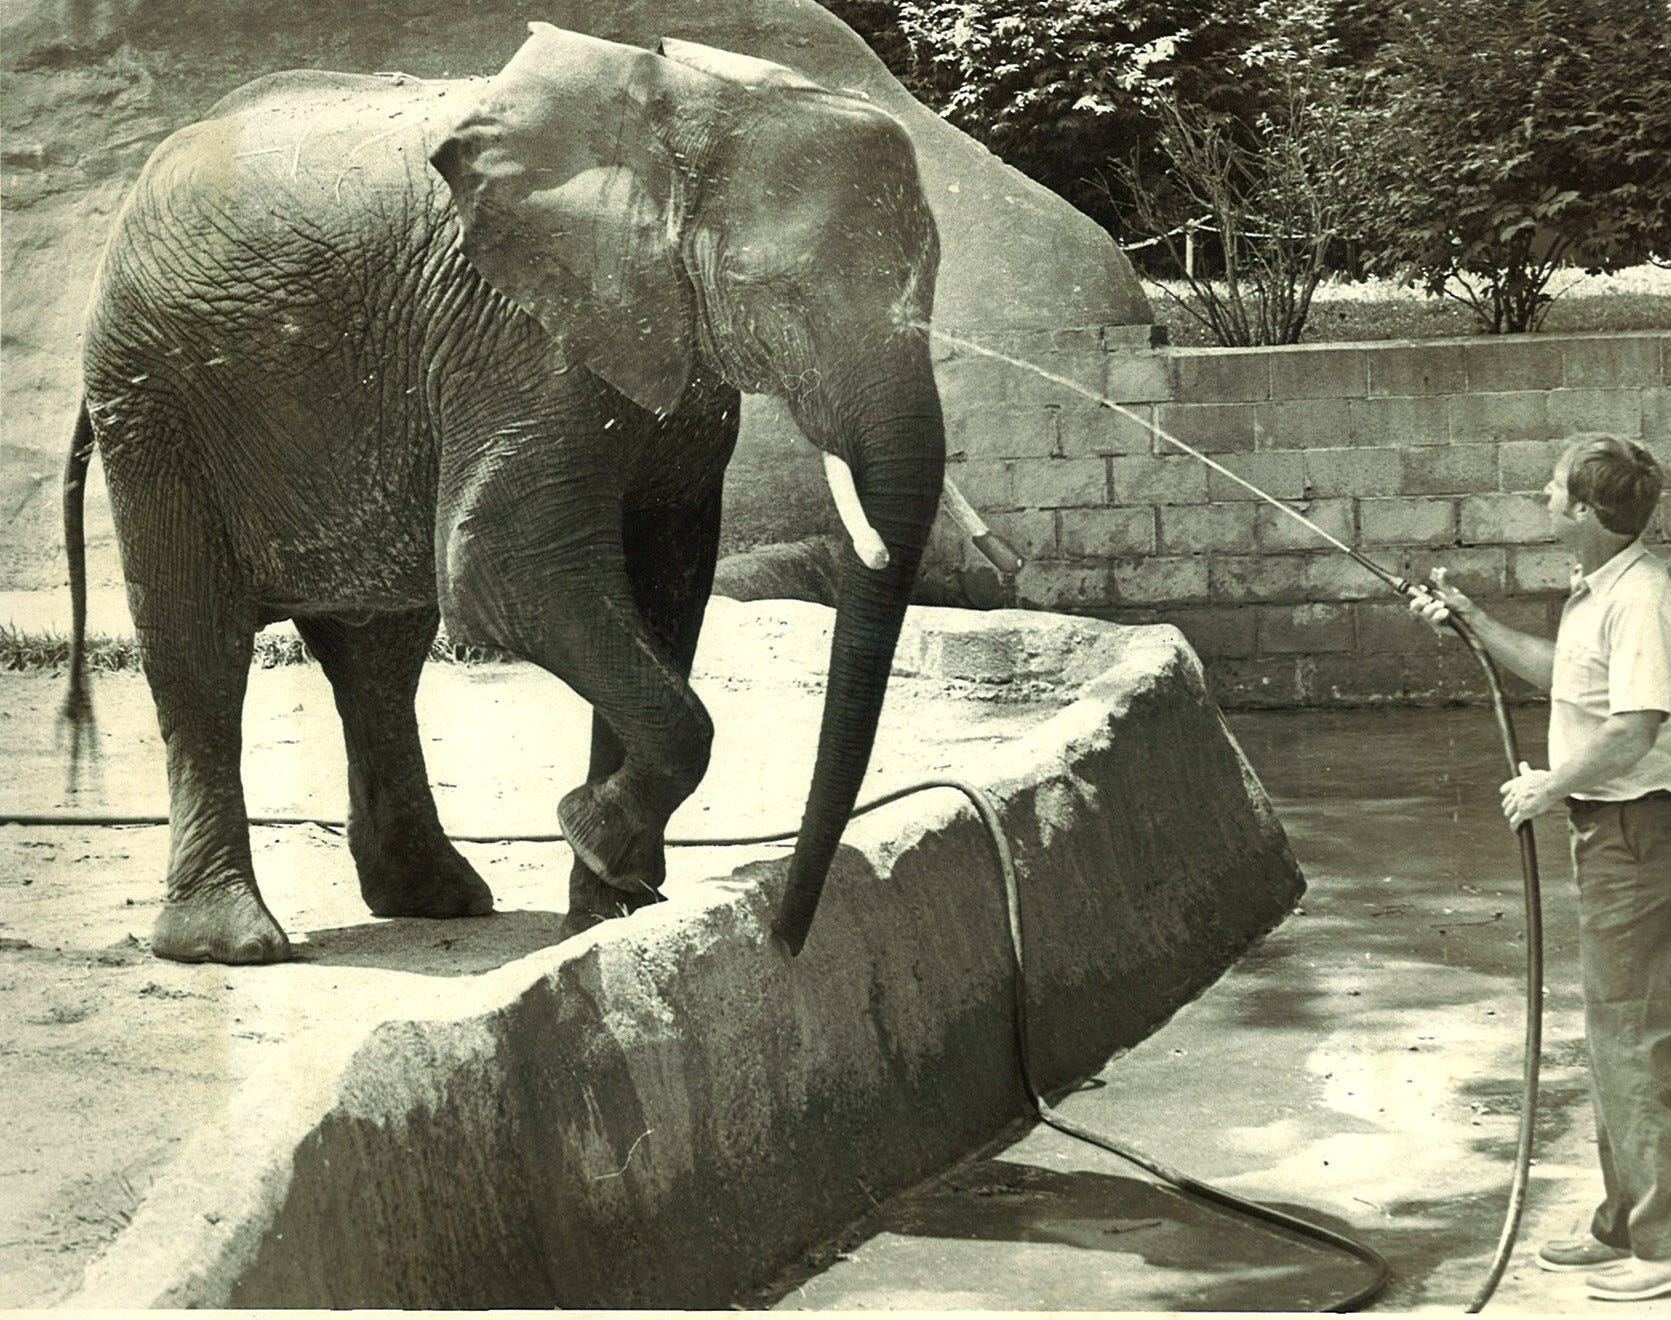 Tombi the elephant gets a little squirt from elephant keeper Earl Austin in 1987 at Lansing's Potter Park Zoo.